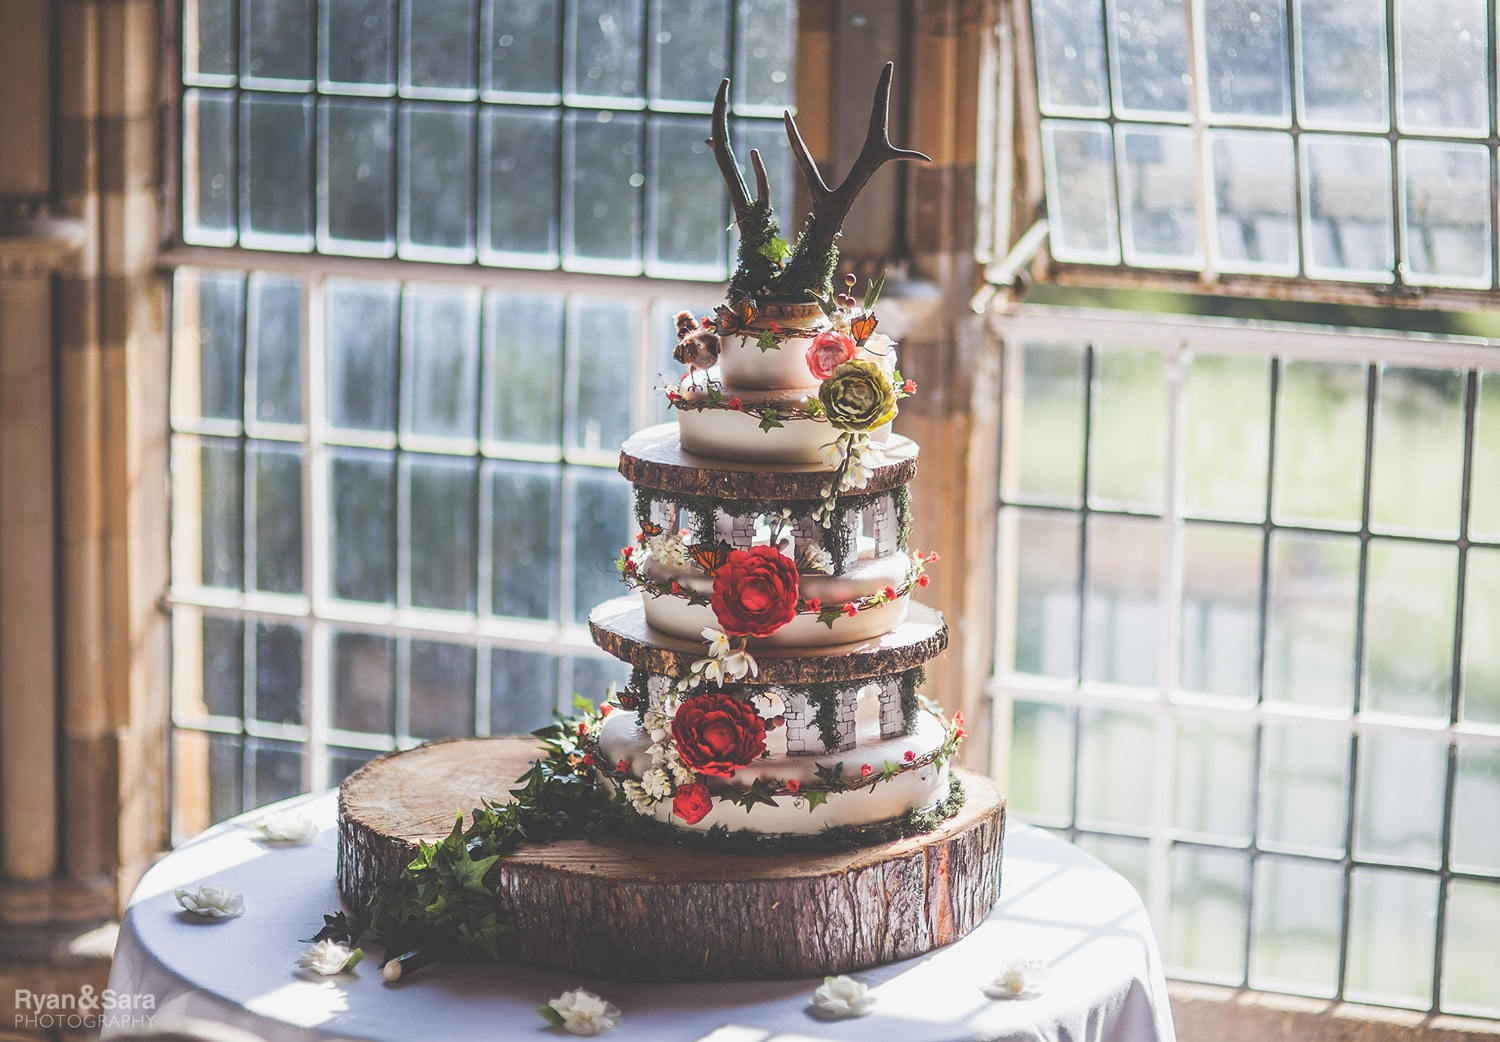 wedding cake, woodland theme wedding, fairytale wedding